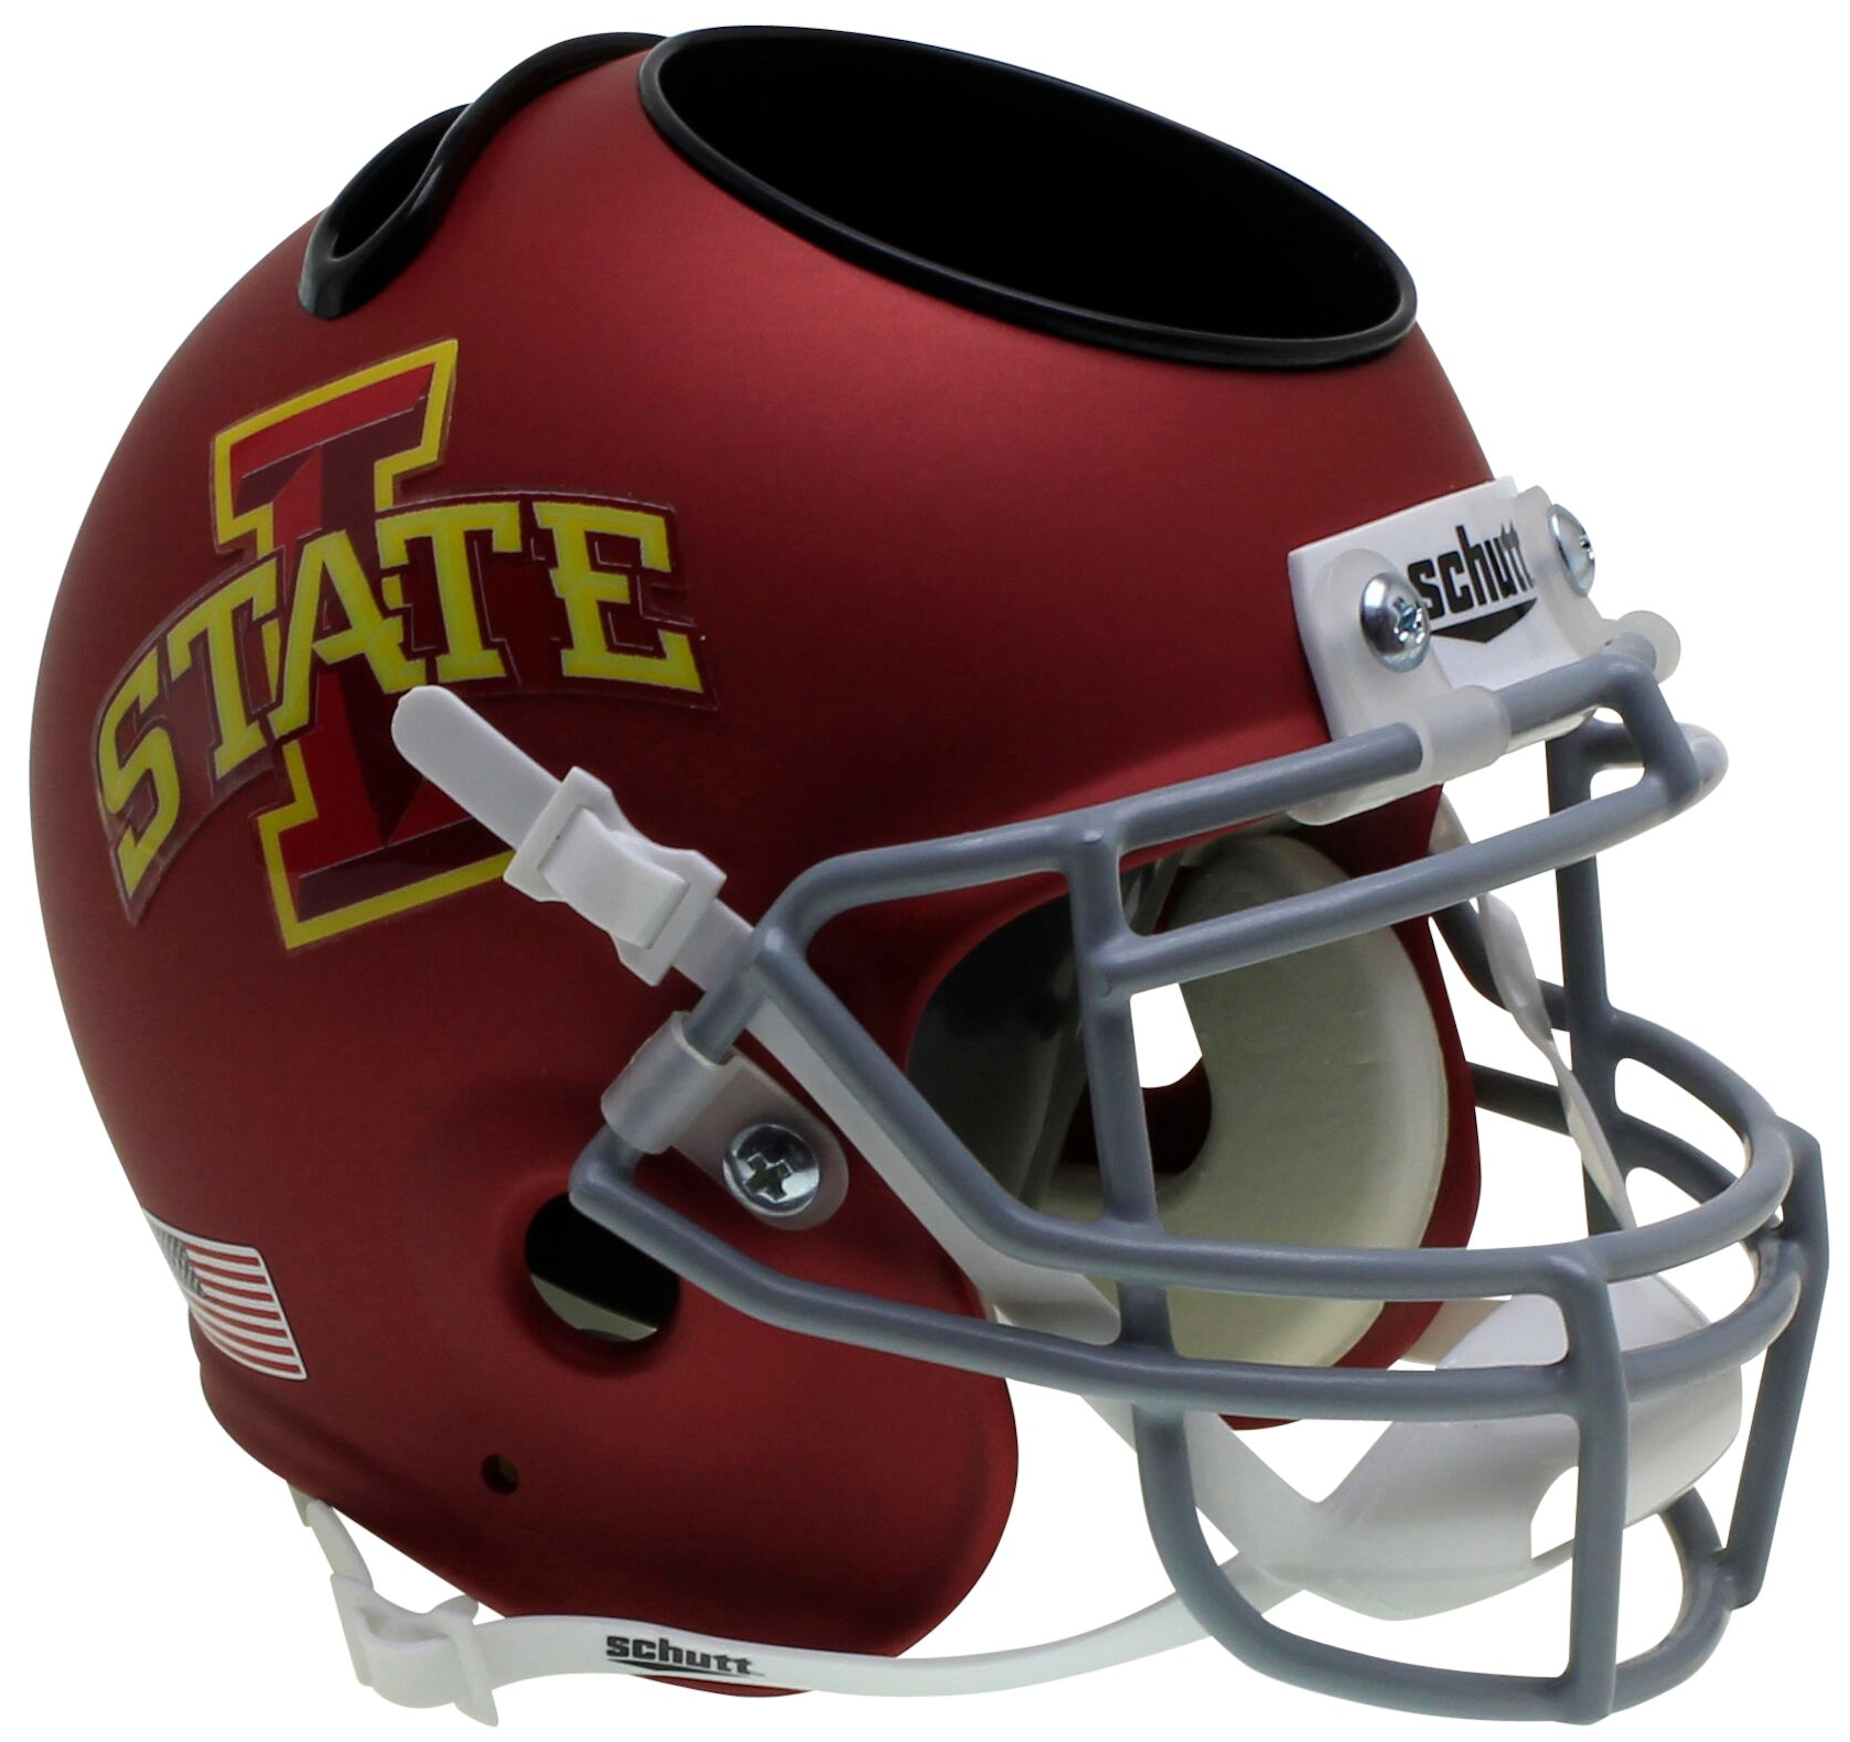 Iowa State Cyclones Miniature Football Helmet Desk Caddy <B>Matte Maroon</B>